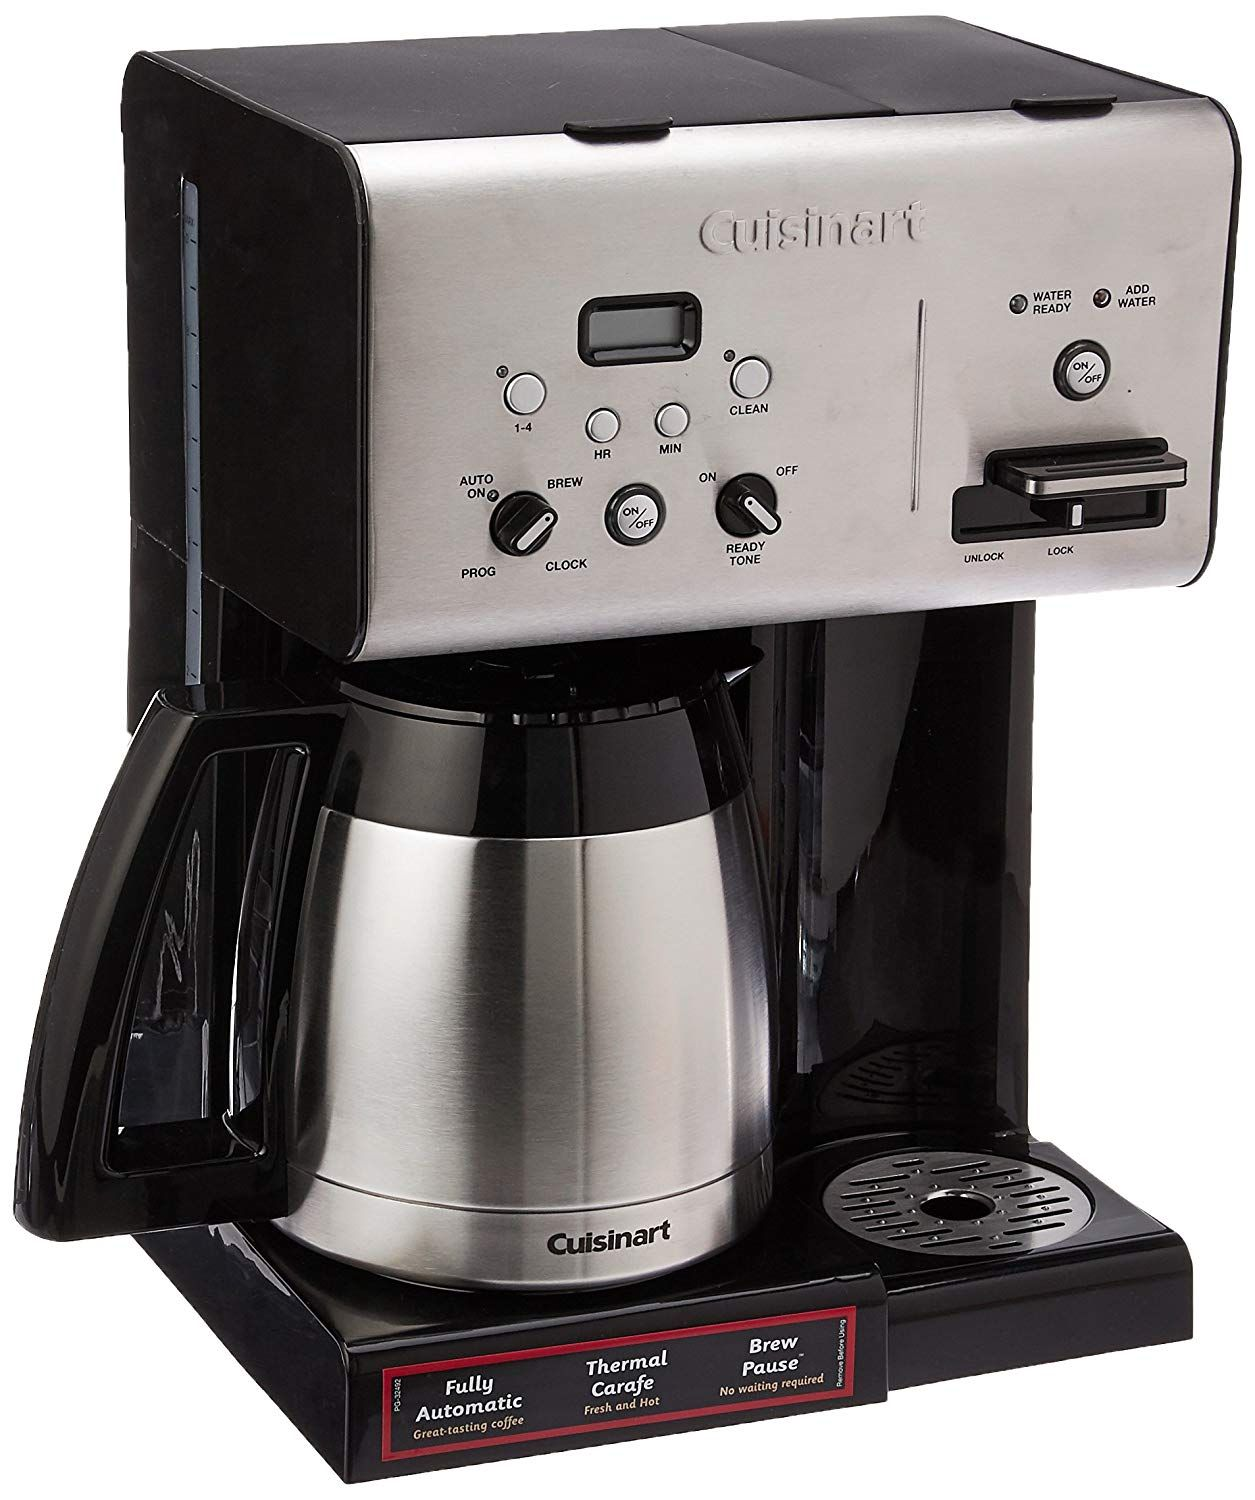 Cuisinart Chw 14 Coffee Plus 10 Cup Thermal Programmable Coffeemaker And Hot Water System Coffeemachine Coffee Maker Best Coffee Maker Cuisinart